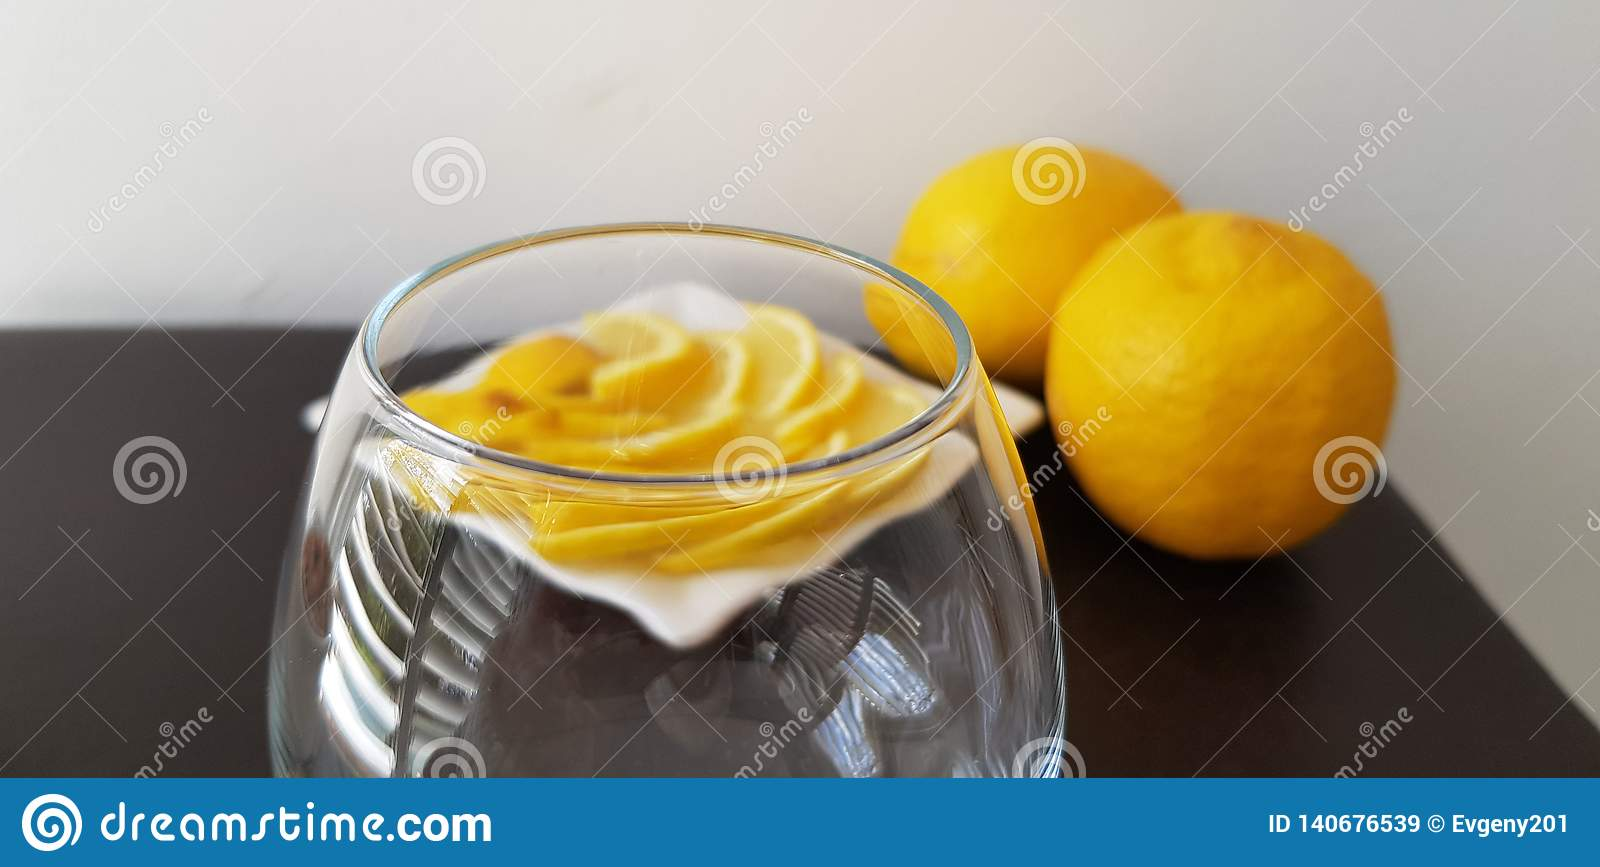 Transparent vine glass on brown table with lemons slices